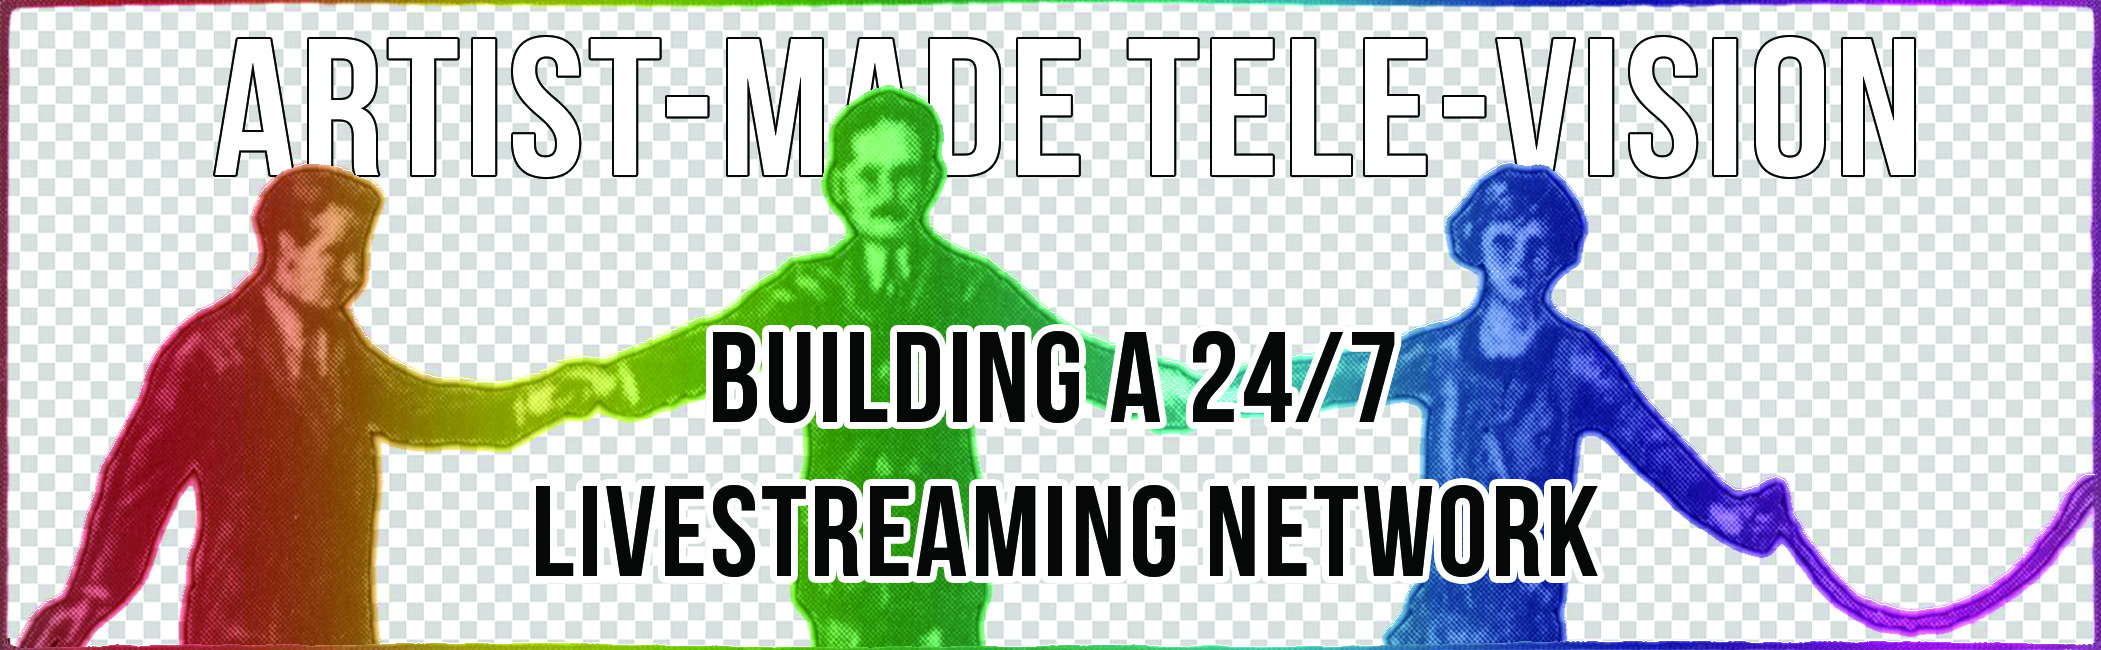 Building a 24/7 LIvestreaming Network